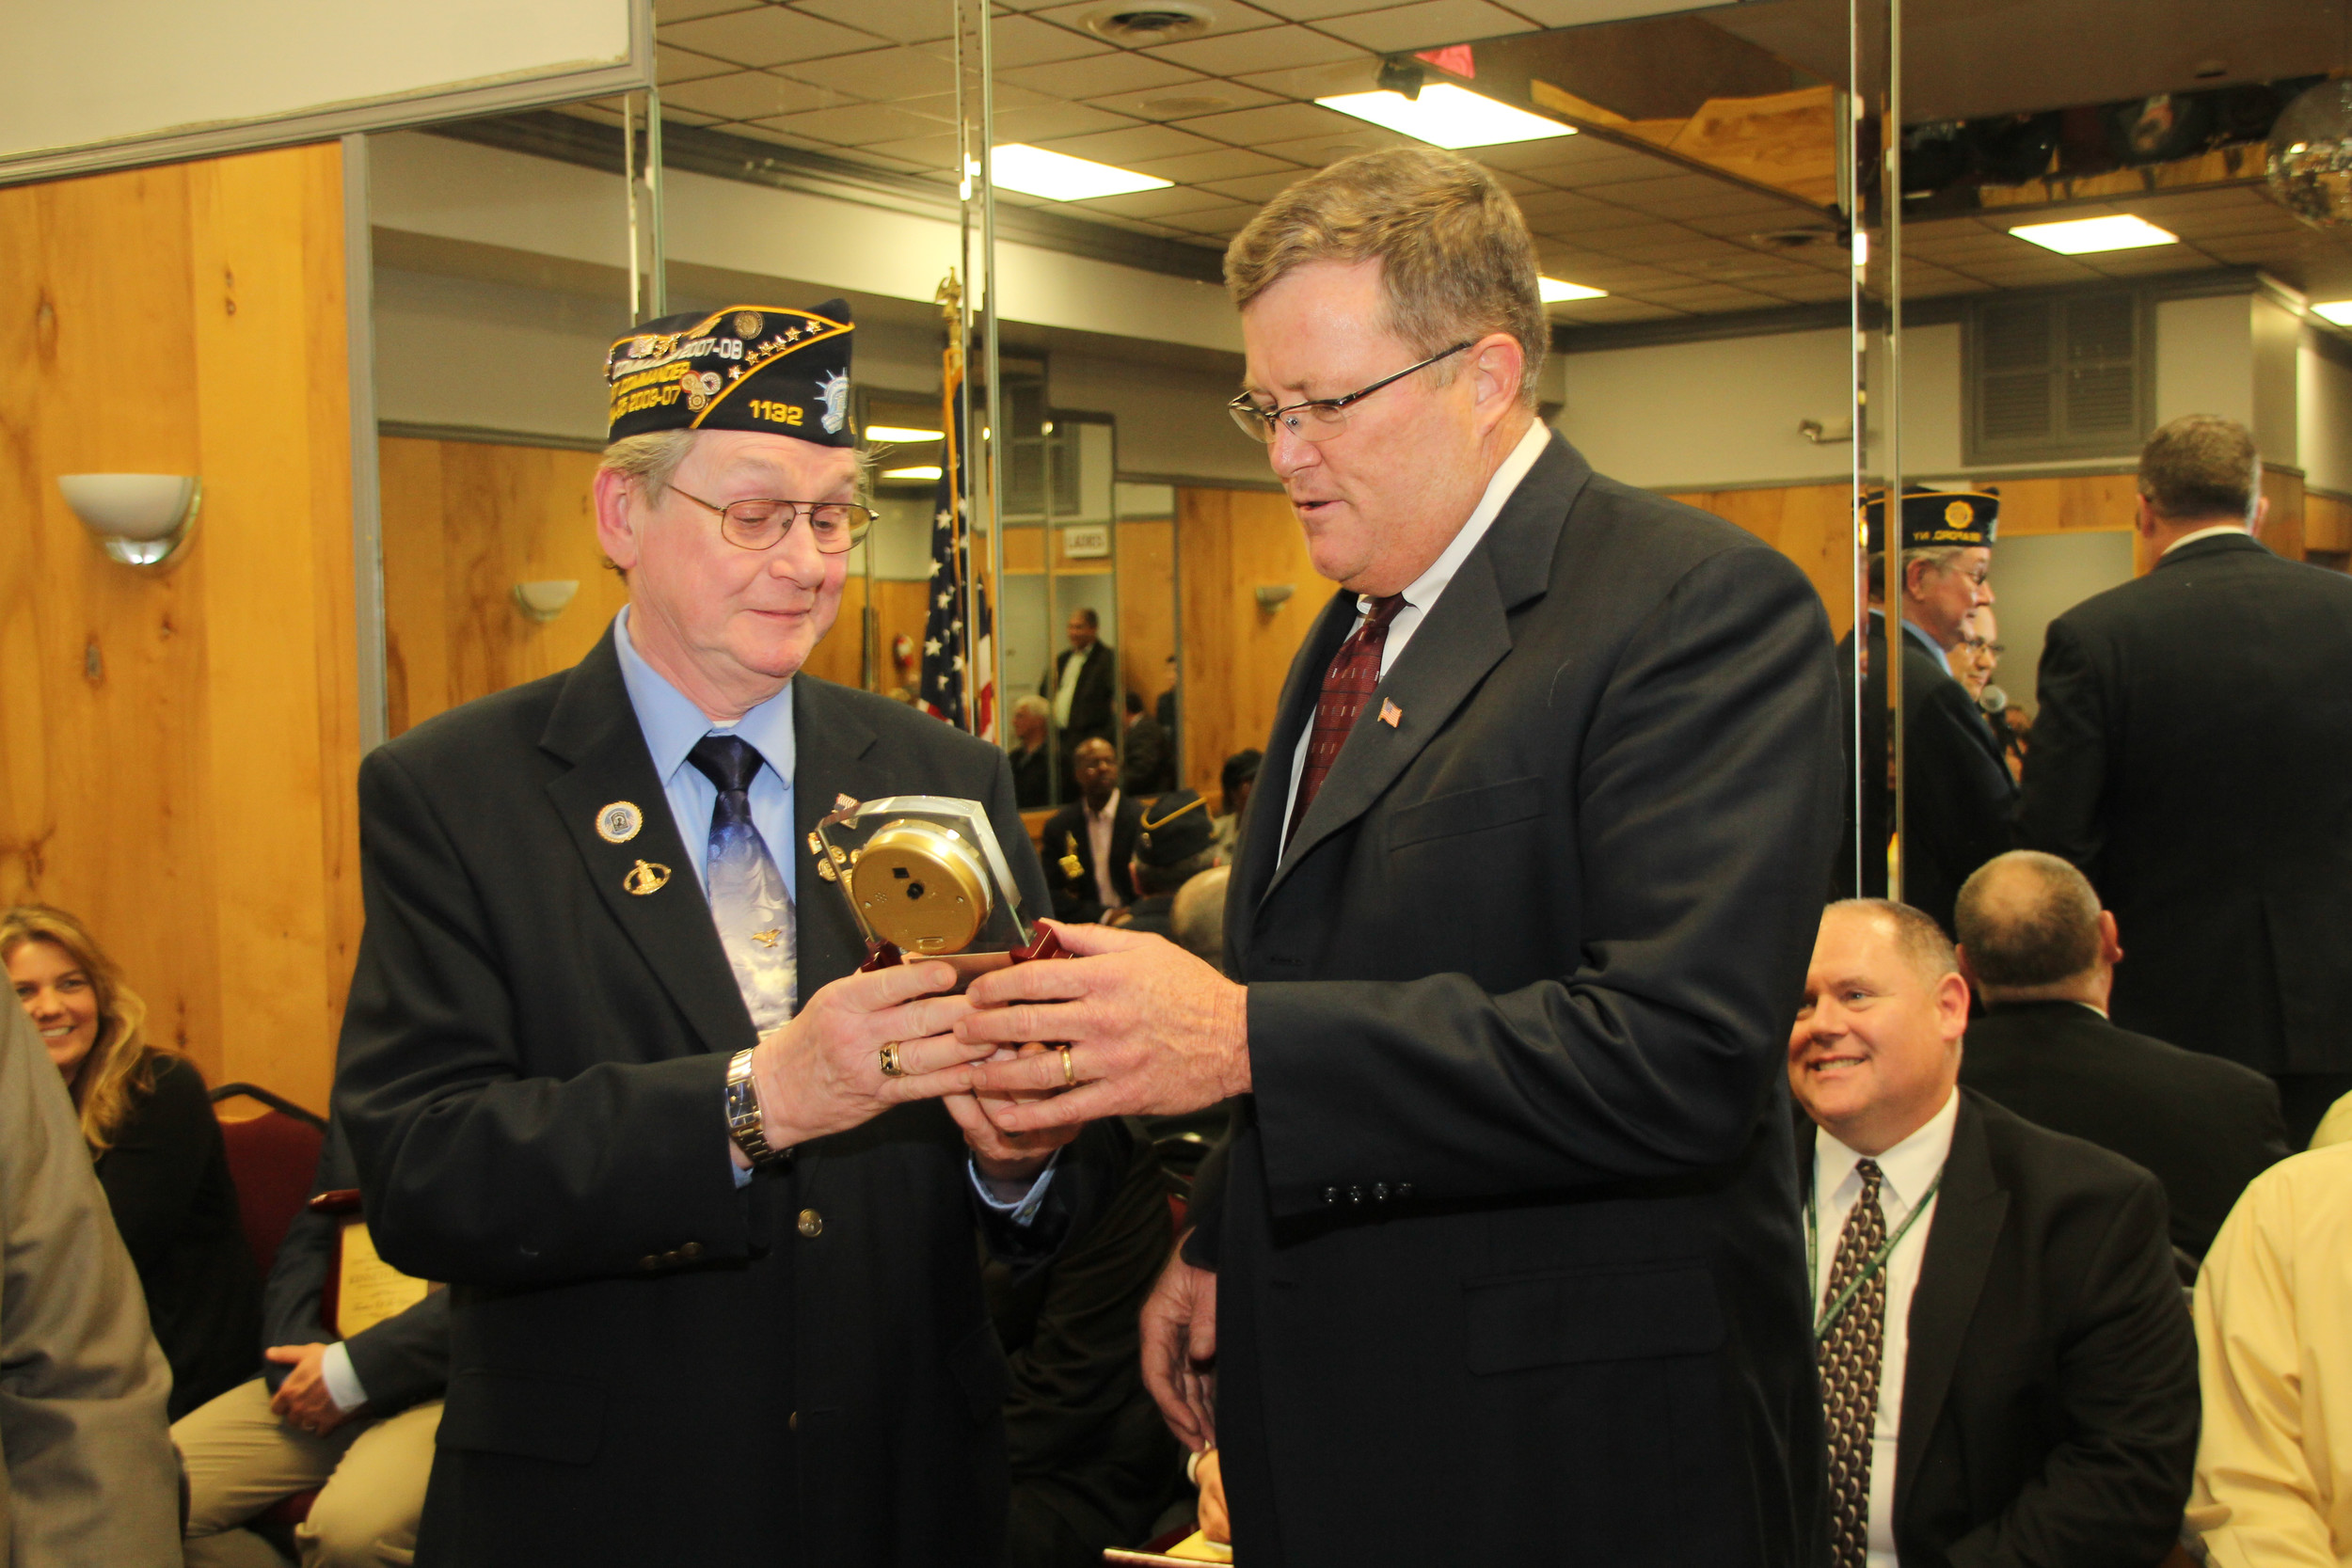 Bill Harms, commander of Seaford American Legion Post 1132, presented Brian Conboy with the group's Special Recognition Award in April. Several community organizations honored Conboy before his retirement this month.